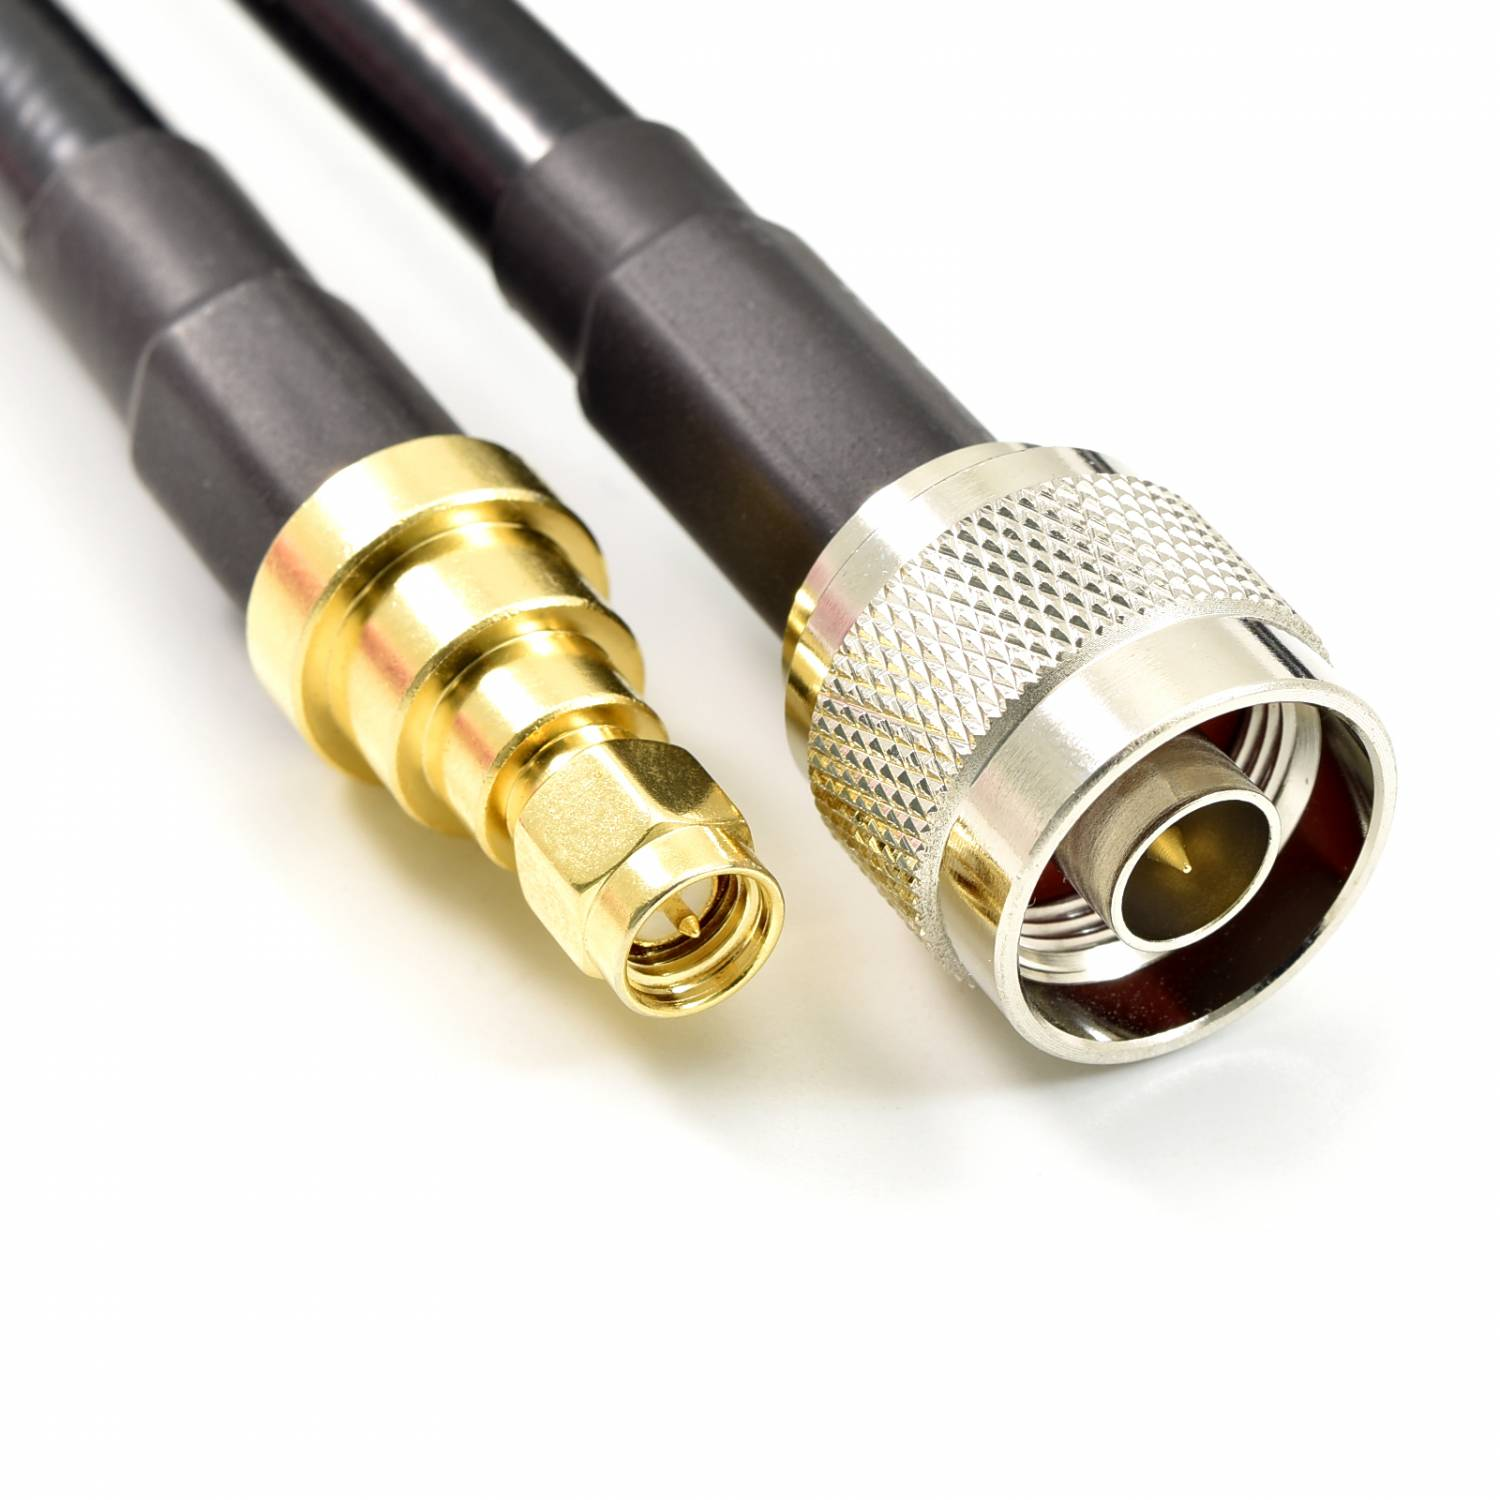 N Male to SMA Male LMR-400 Low Loss Coaxial Cable 10m 32feet